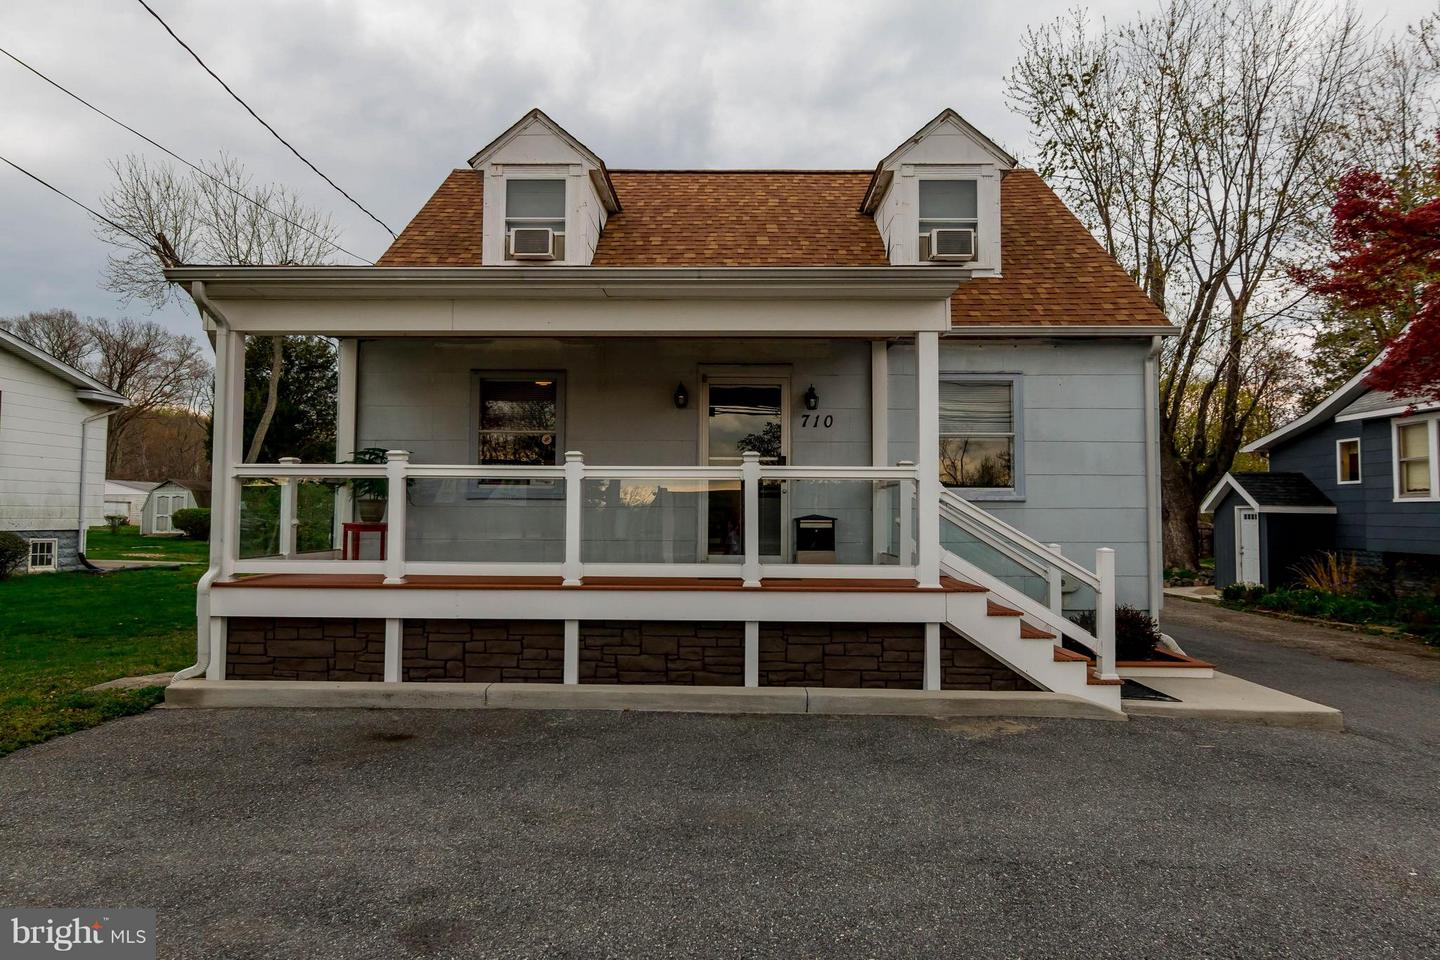 Commercial for Sale at 710 Hammonds Ferry Rd Linthicum Heights, Maryland 21090 United States